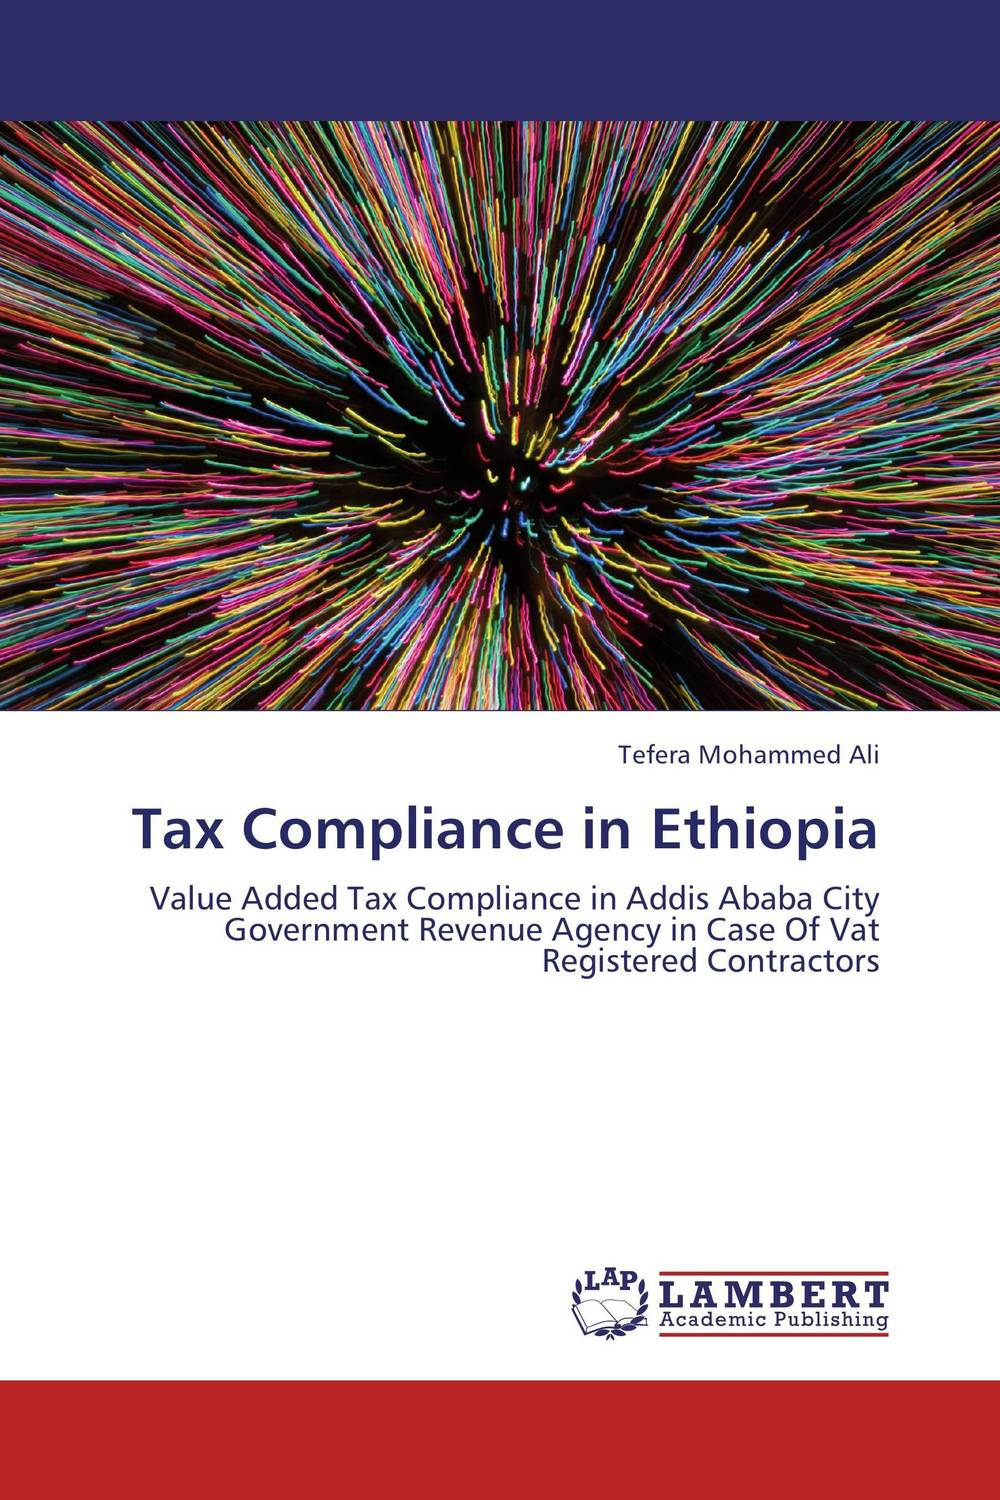 Tax Compliance in Ethiopia augustine wilson boateng improving tax revenue collection in ghana